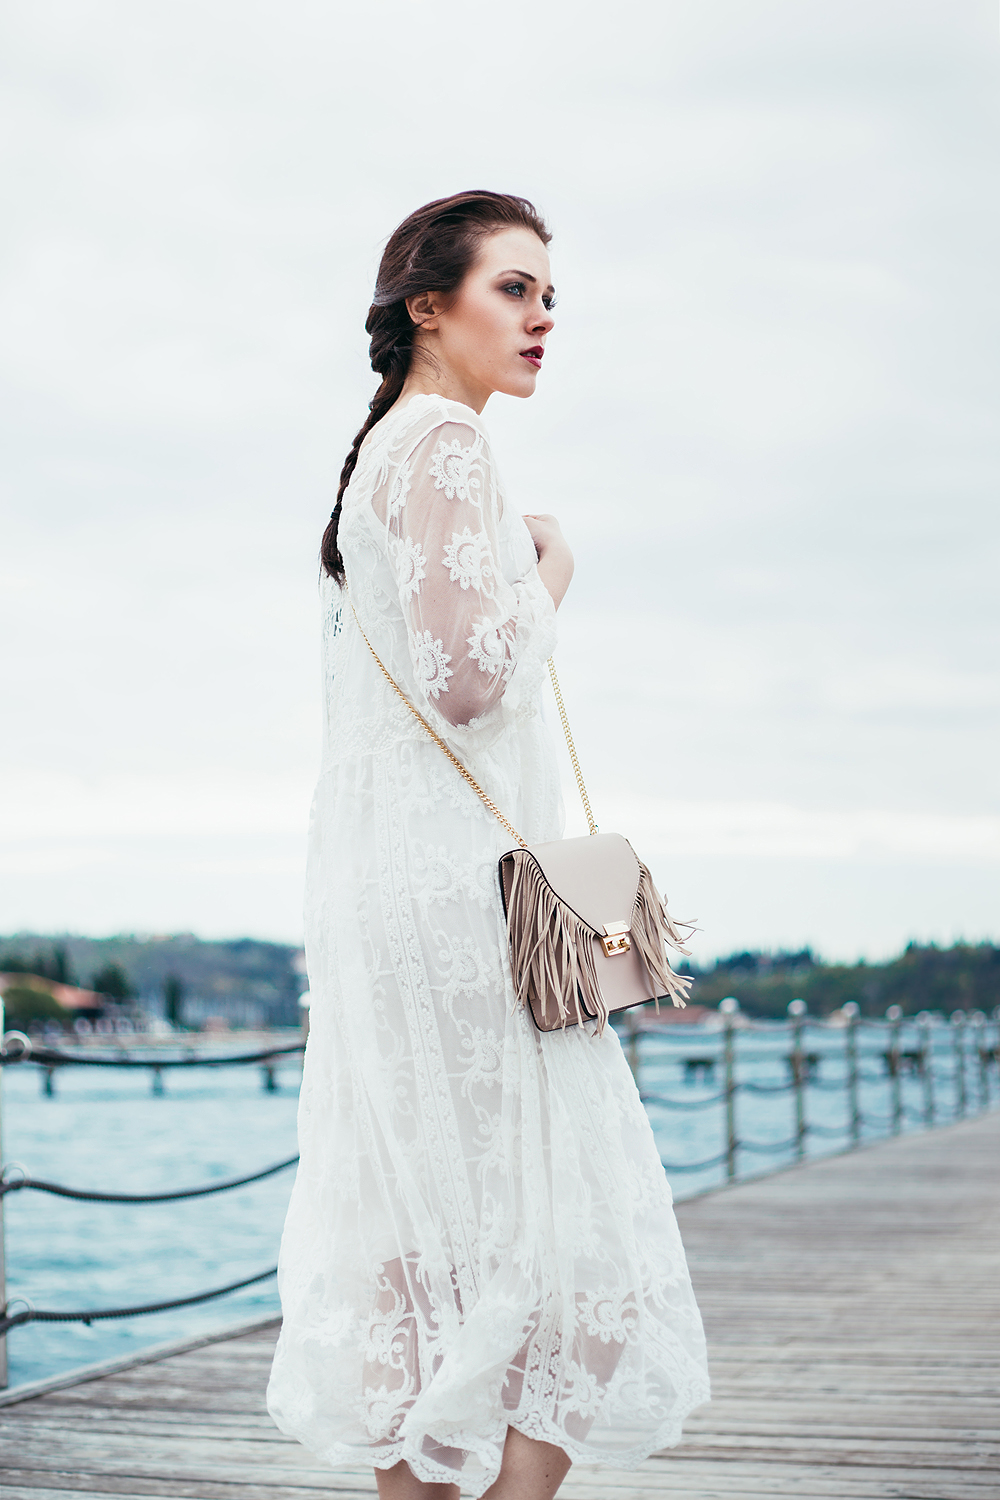 Eva Ahačevčič_Love, Eva_OOTD_FAshion blogger_Terminal 3_WHite dress_Boho